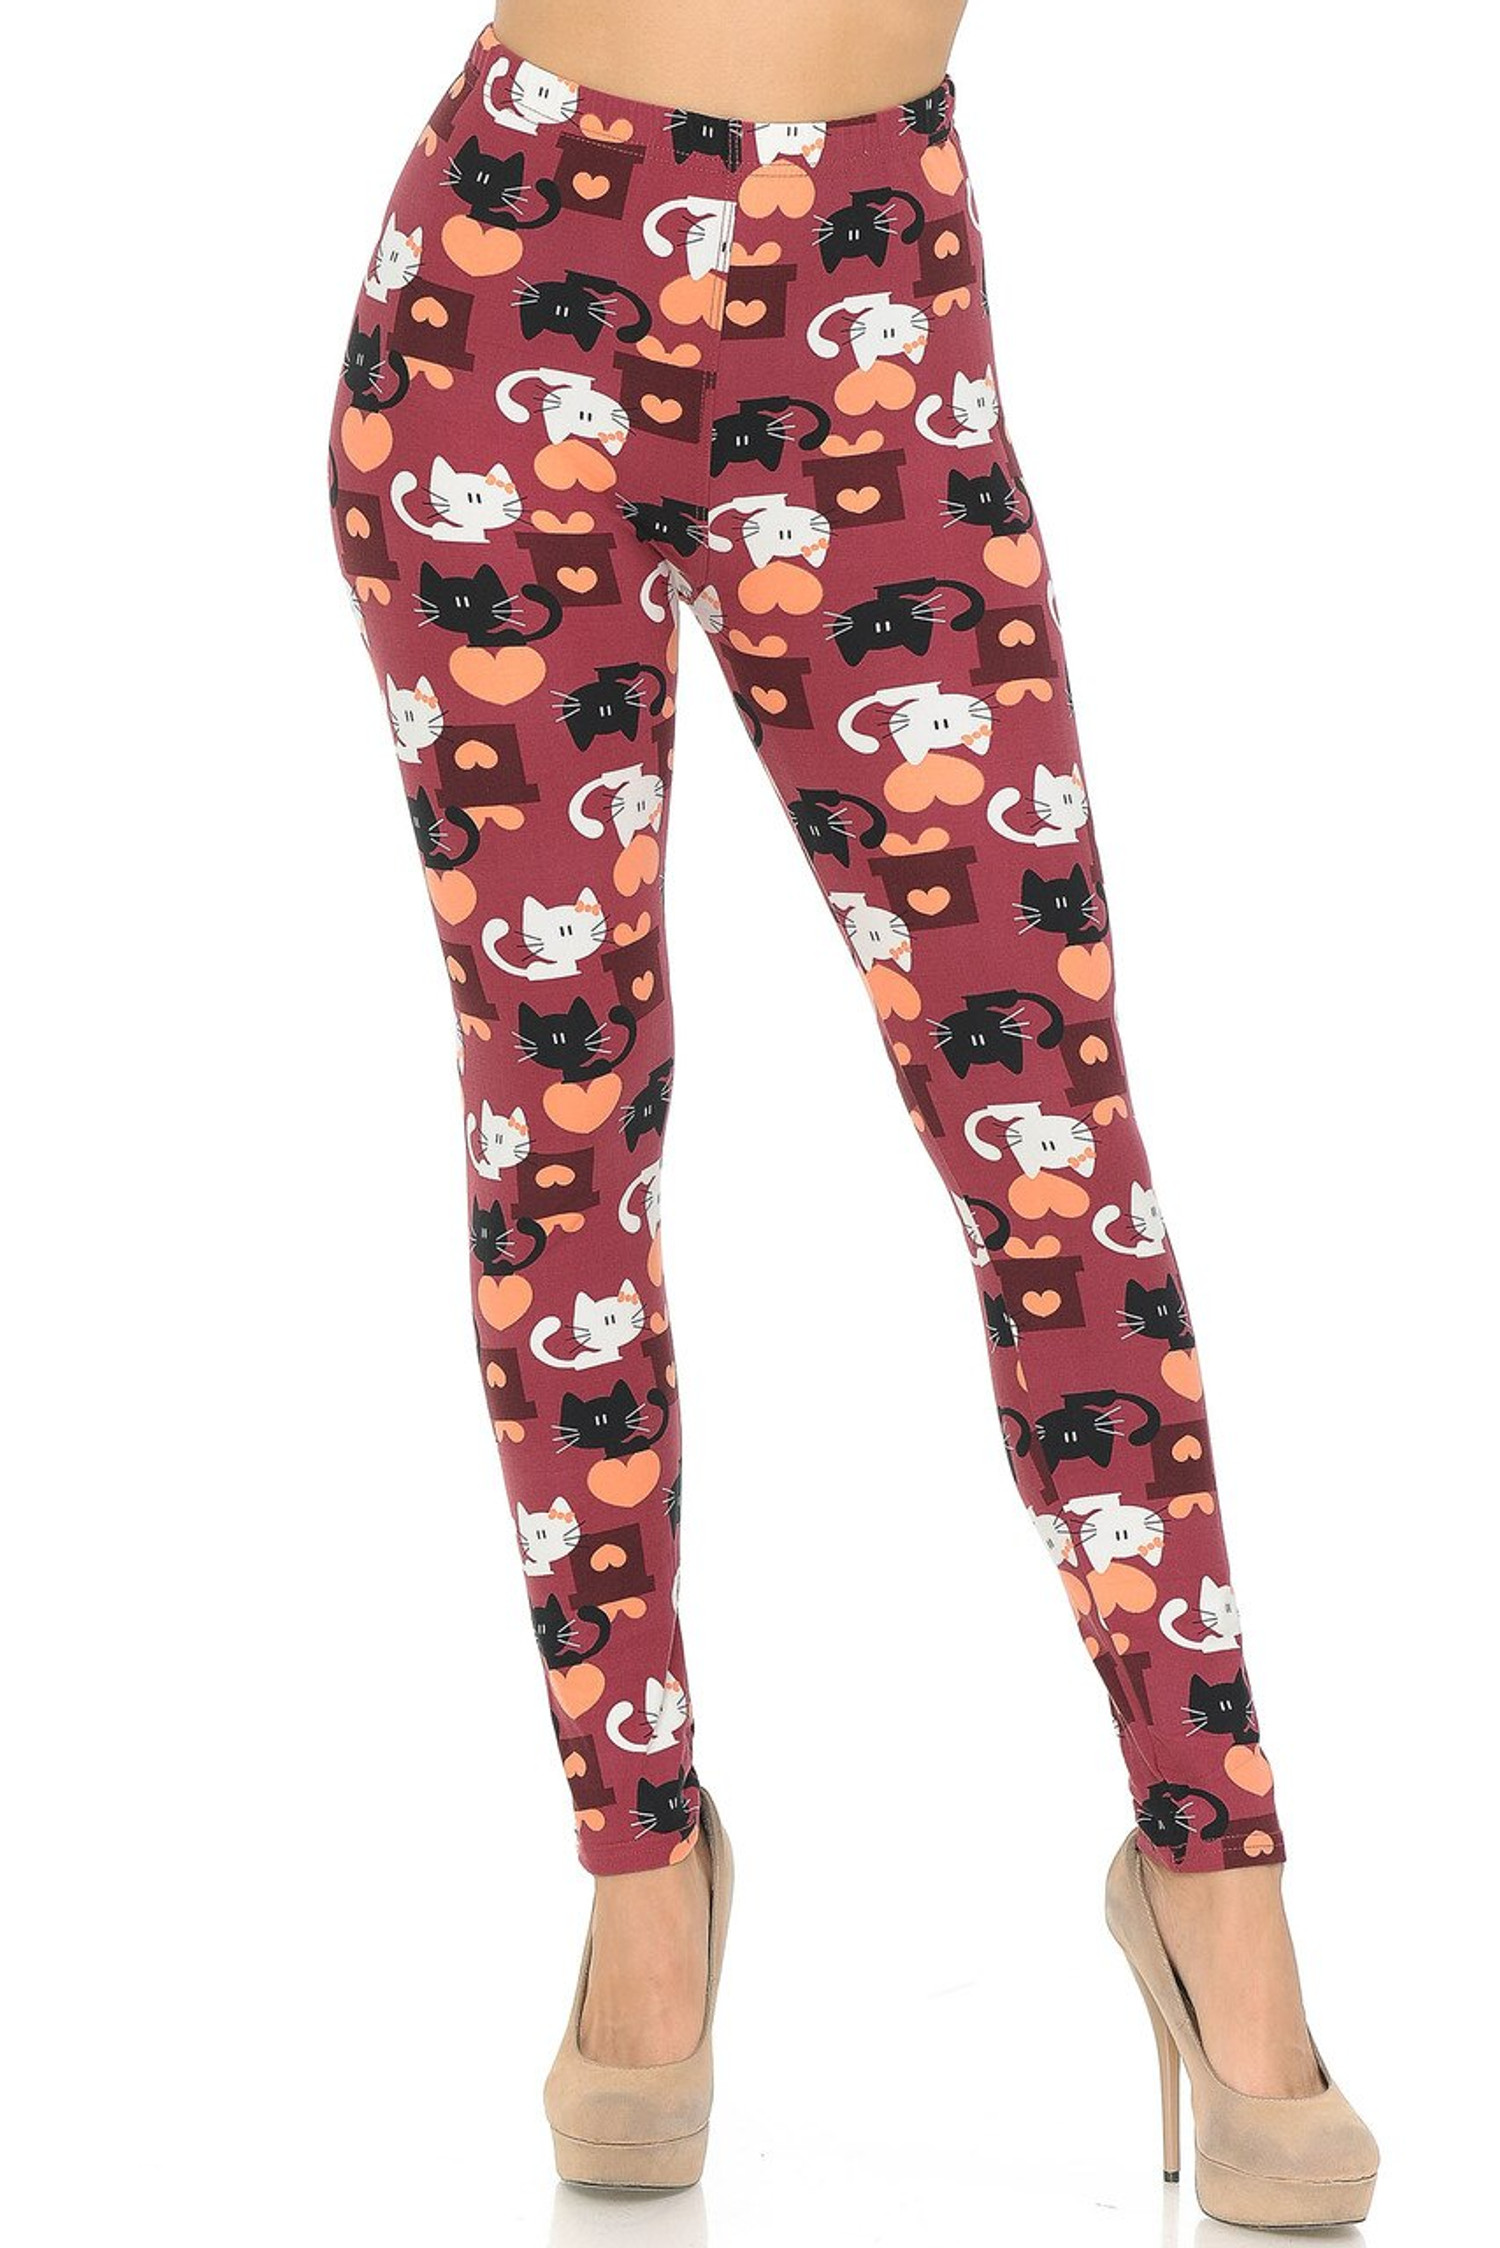 Lovable Kitty Cats Buttery Soft Leggings